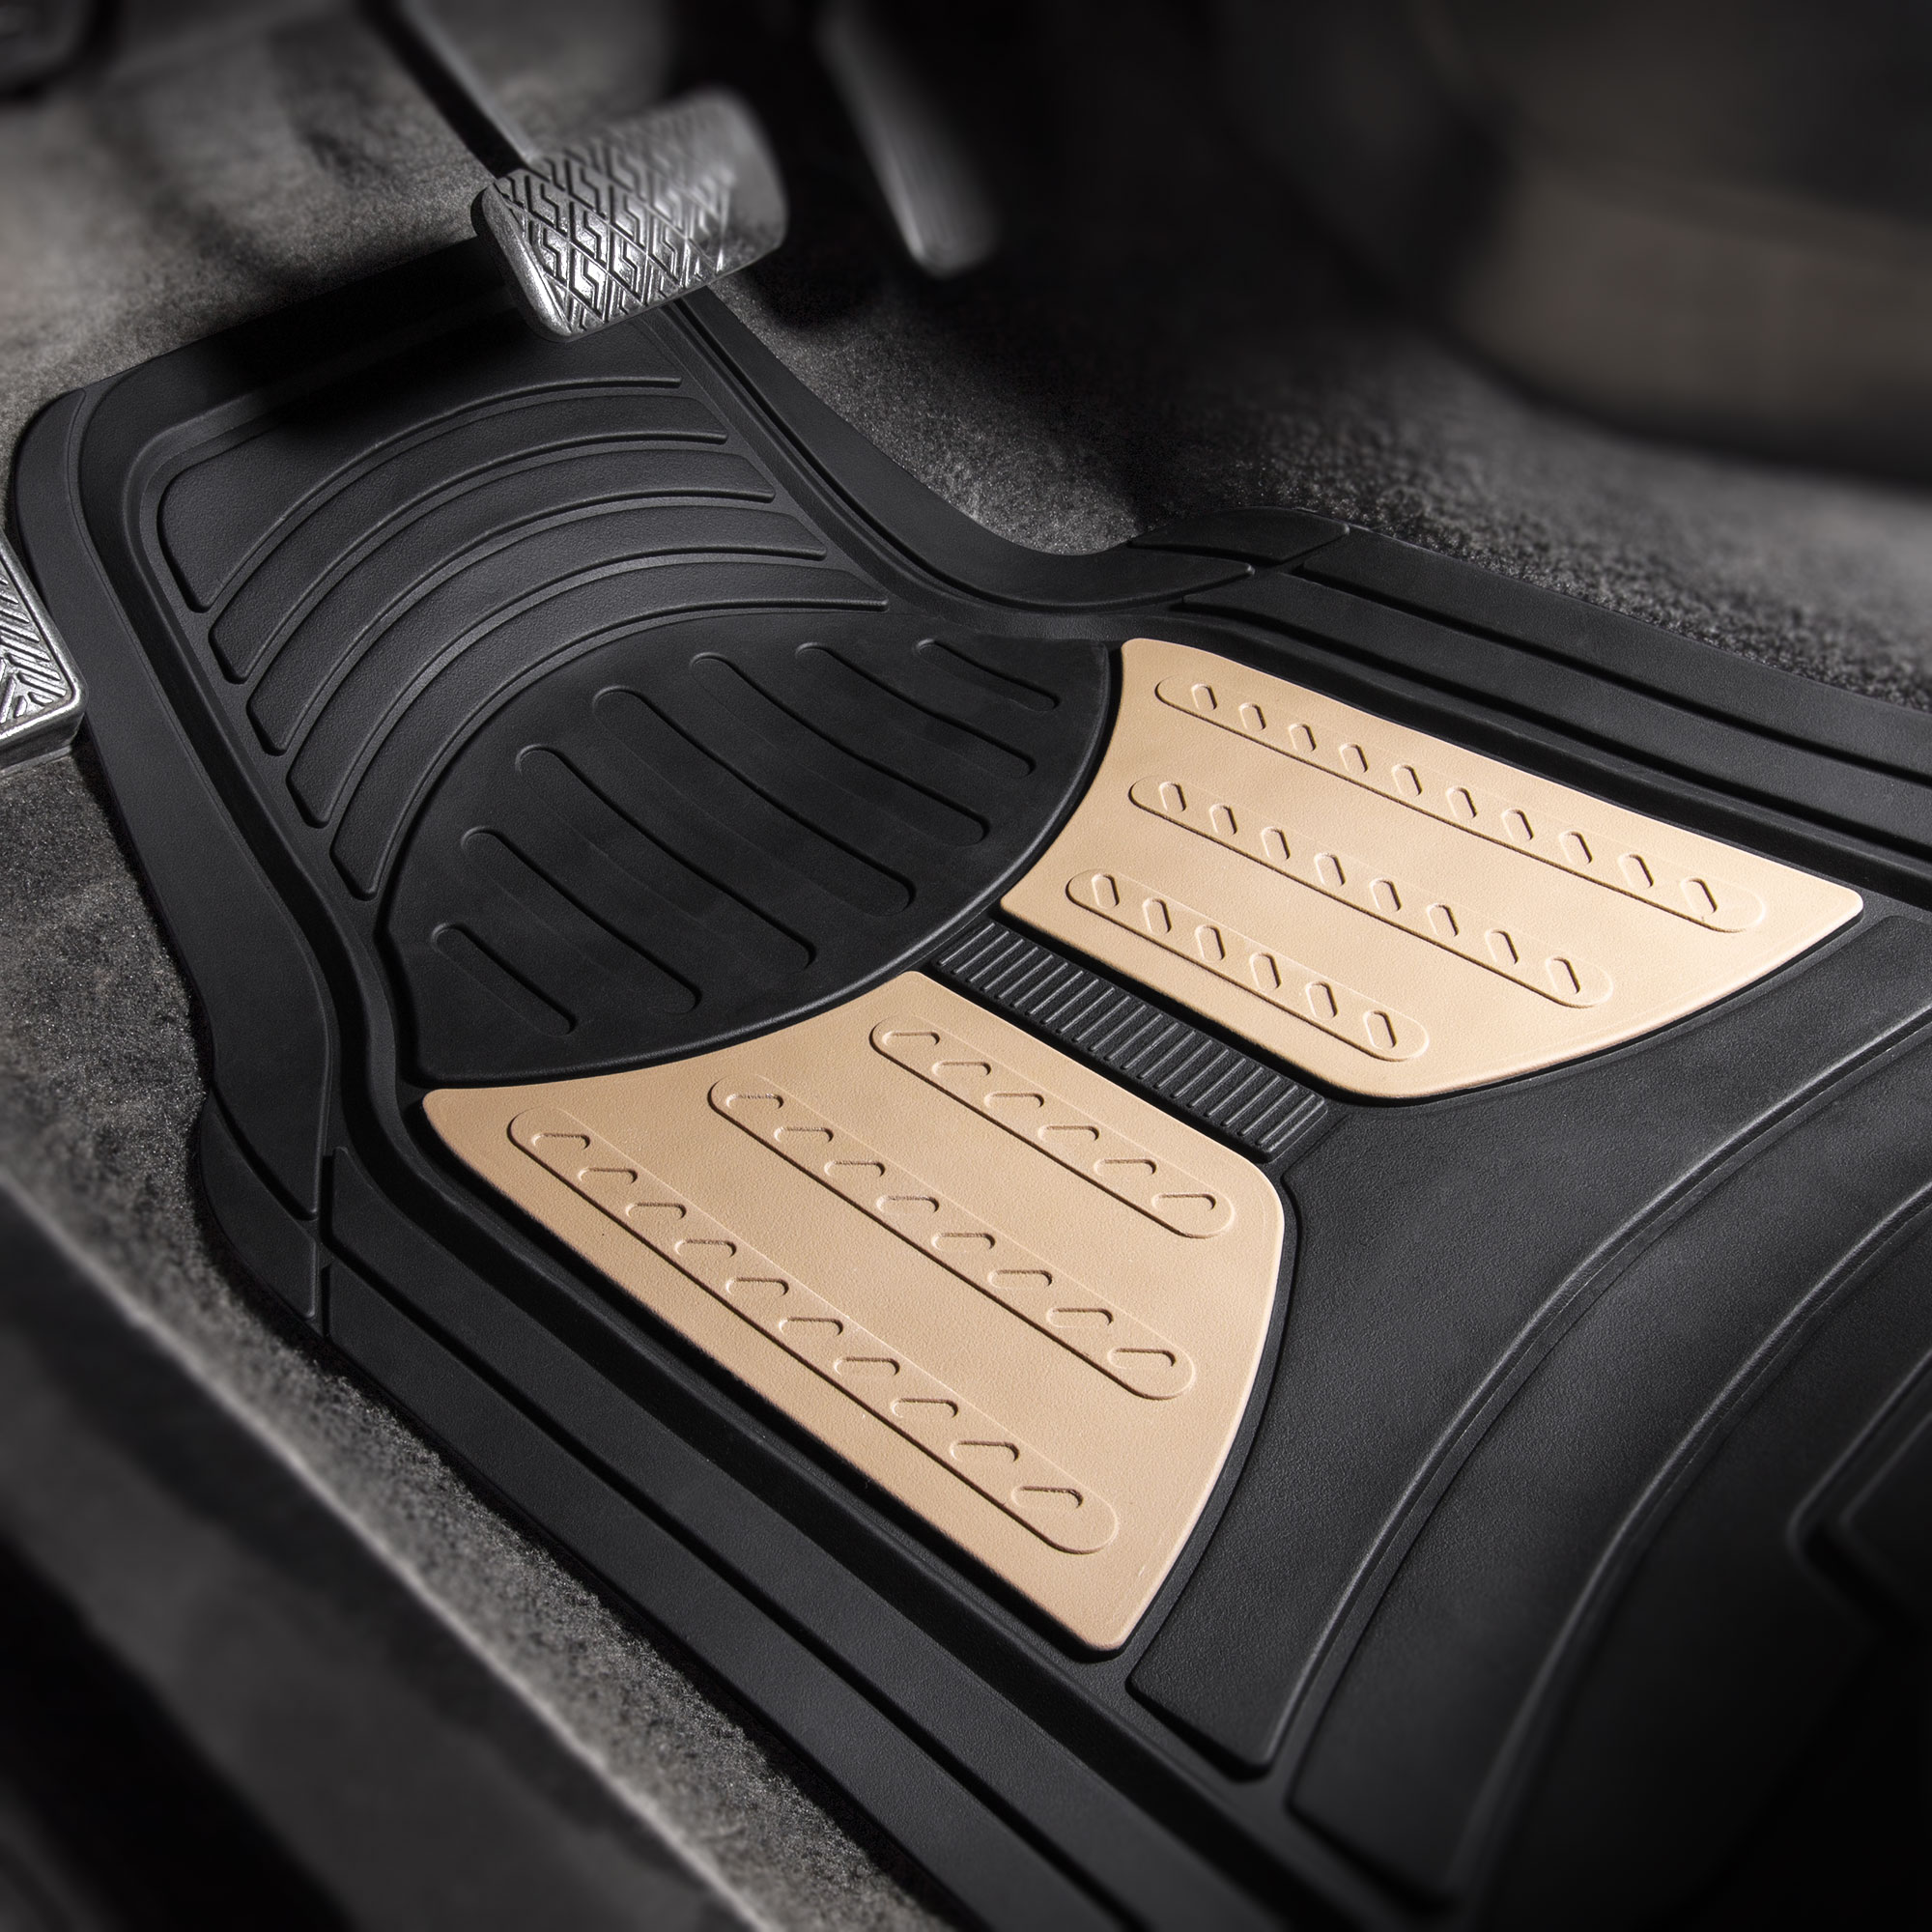 Car-Floor-Mats-for-All-Weather-Rubber-2-Tone-Design-4pc-Set-Heavy-Duty thumbnail 5